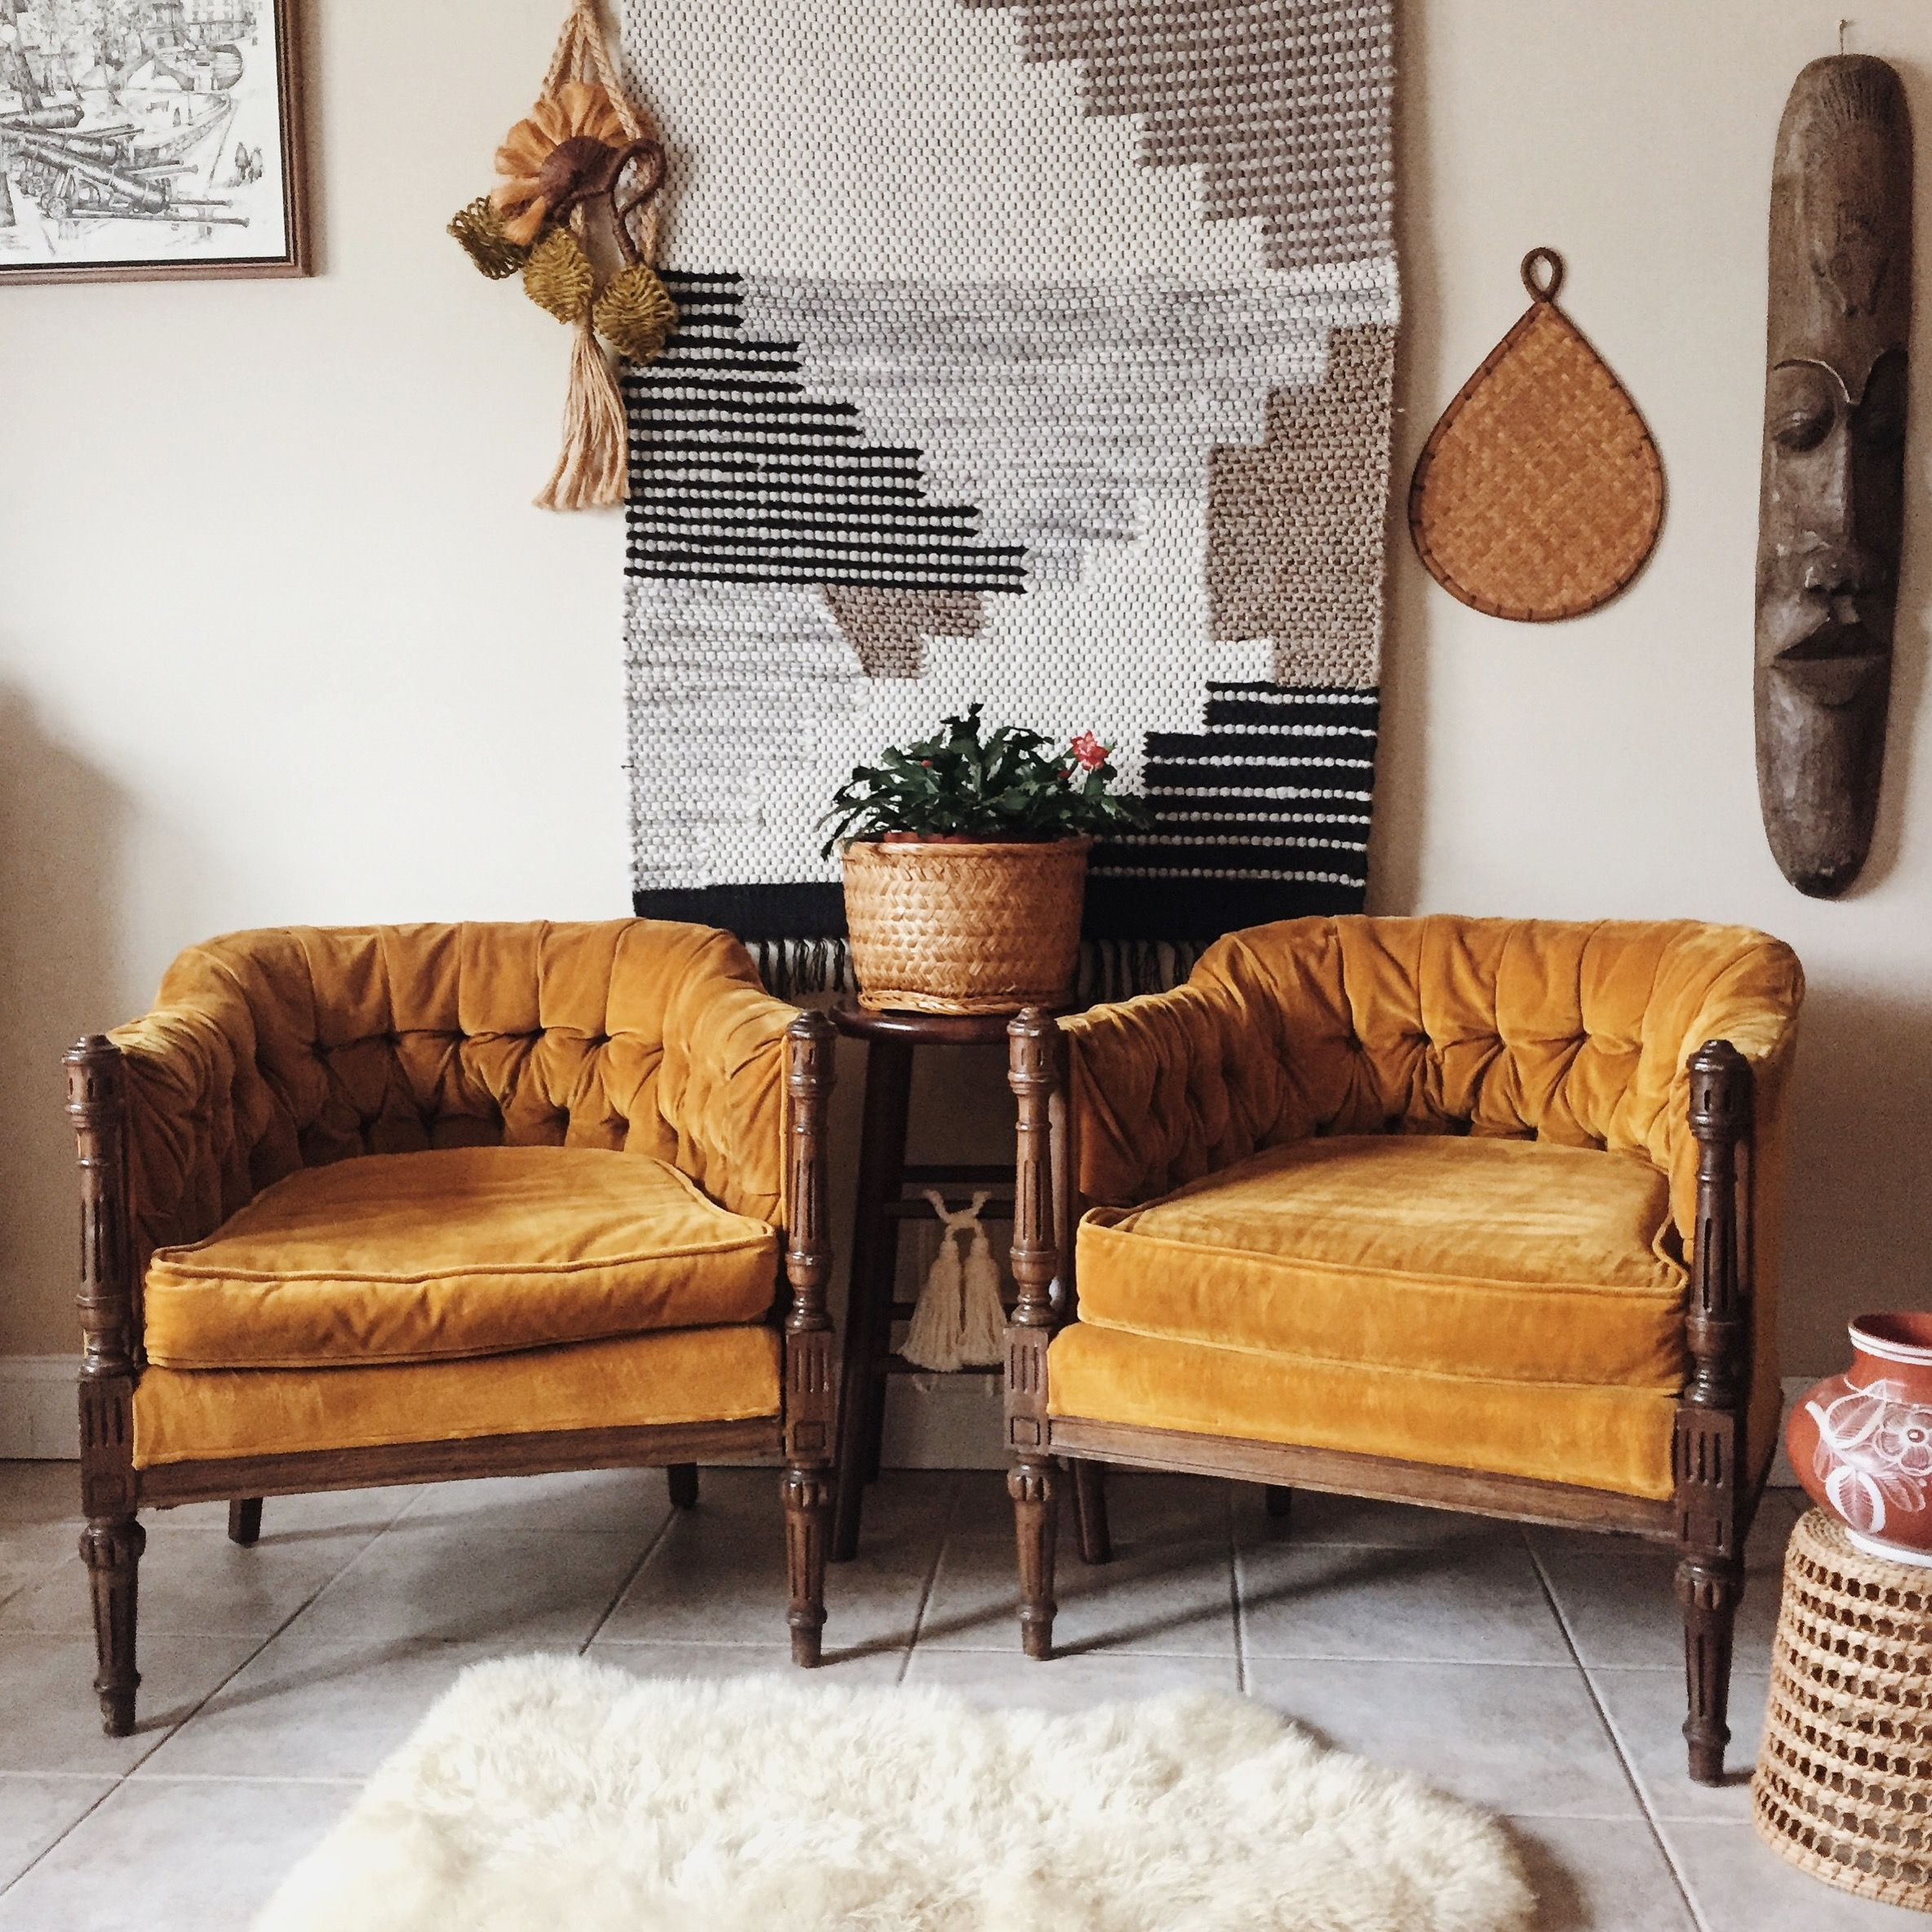 Crave Worthy Missoni Paulistano Armchair: Pin By Mallory Stanton On VINTAGE AND SWOON